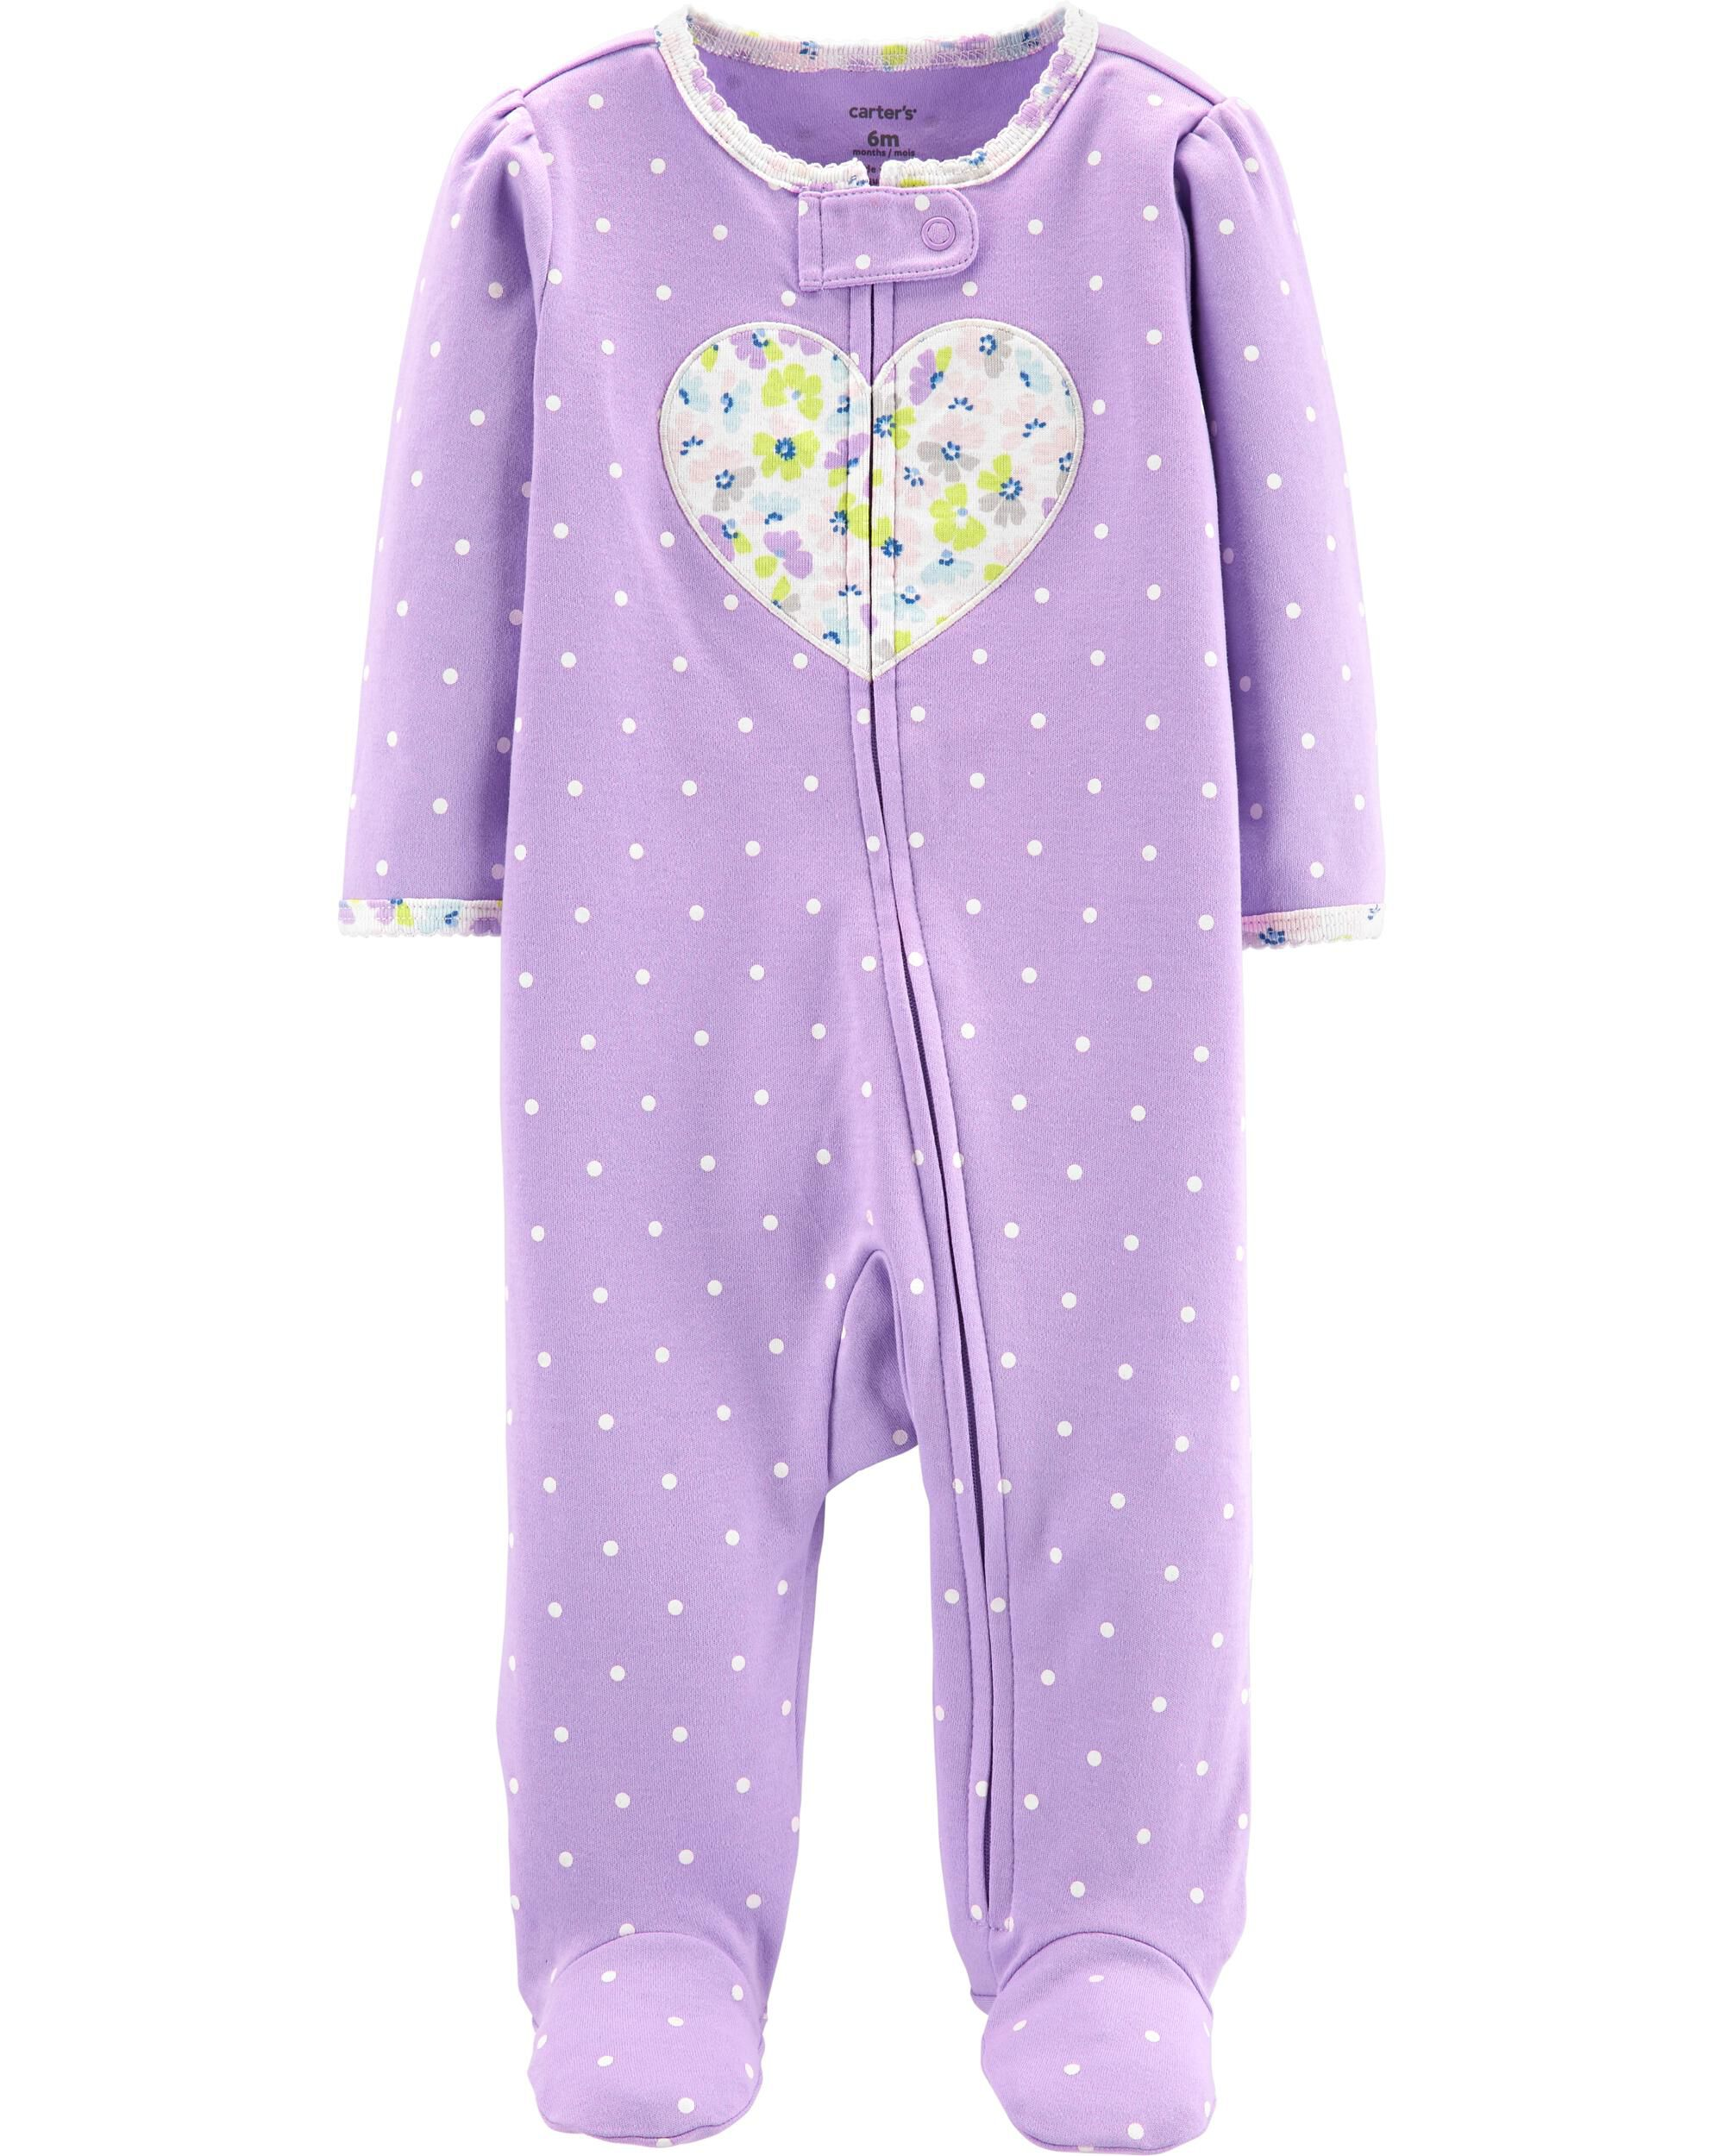 Girls' Clothing (0-24 Months) Clothes, Shoes & Accessories Hearty Girls All In One Age 0-3 Months 3 Pack